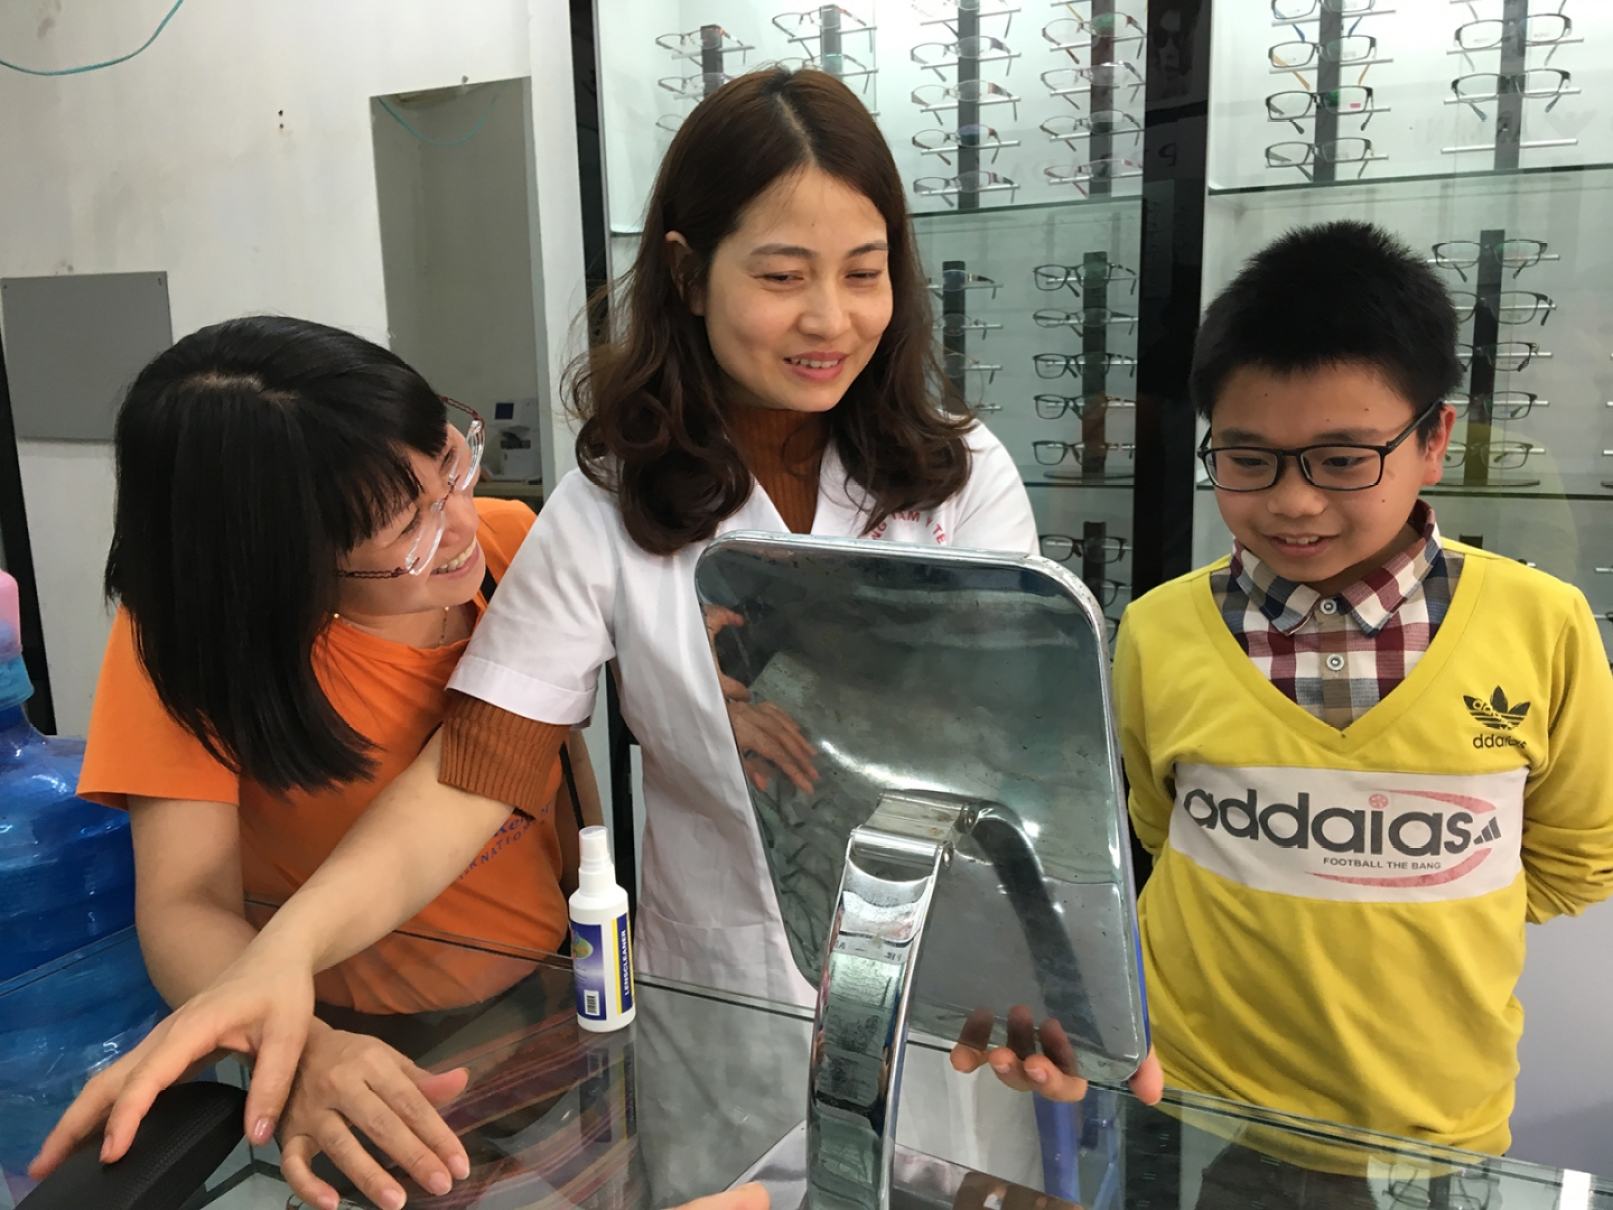 Ngoc looks on as an optician helps a boy choose eye glasses that will not only help him see, but that he will also be proud to wear